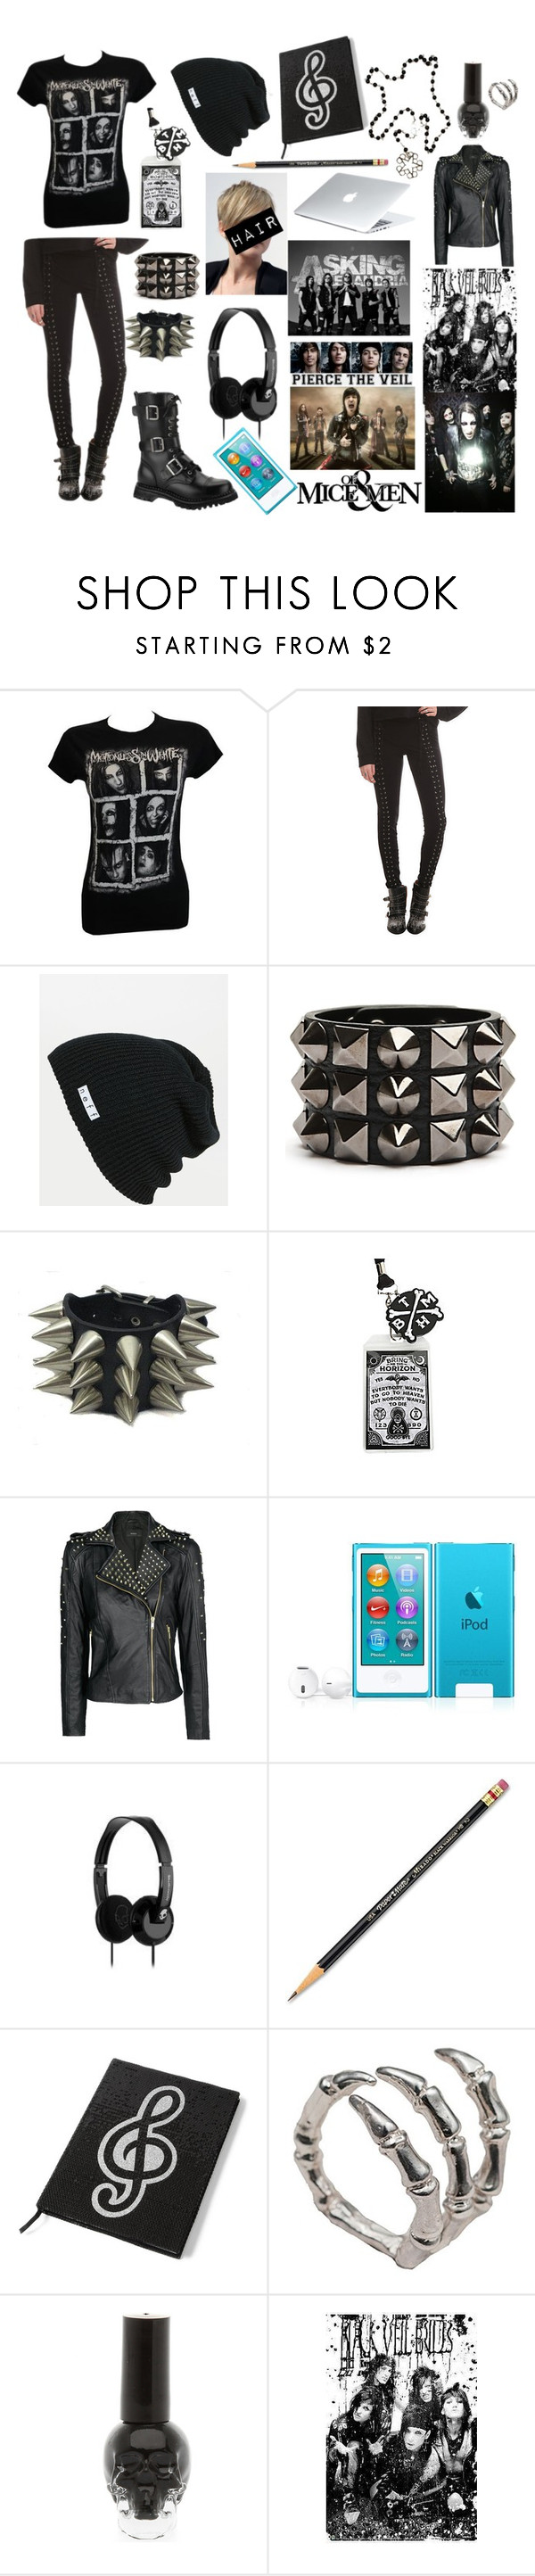 """""""Back To School -_-"""" by bvb-bekka ❤ liked on Polyvore featuring Neff, MANGO, Skullcandy, Paper Mate and Bernard Delettrez"""